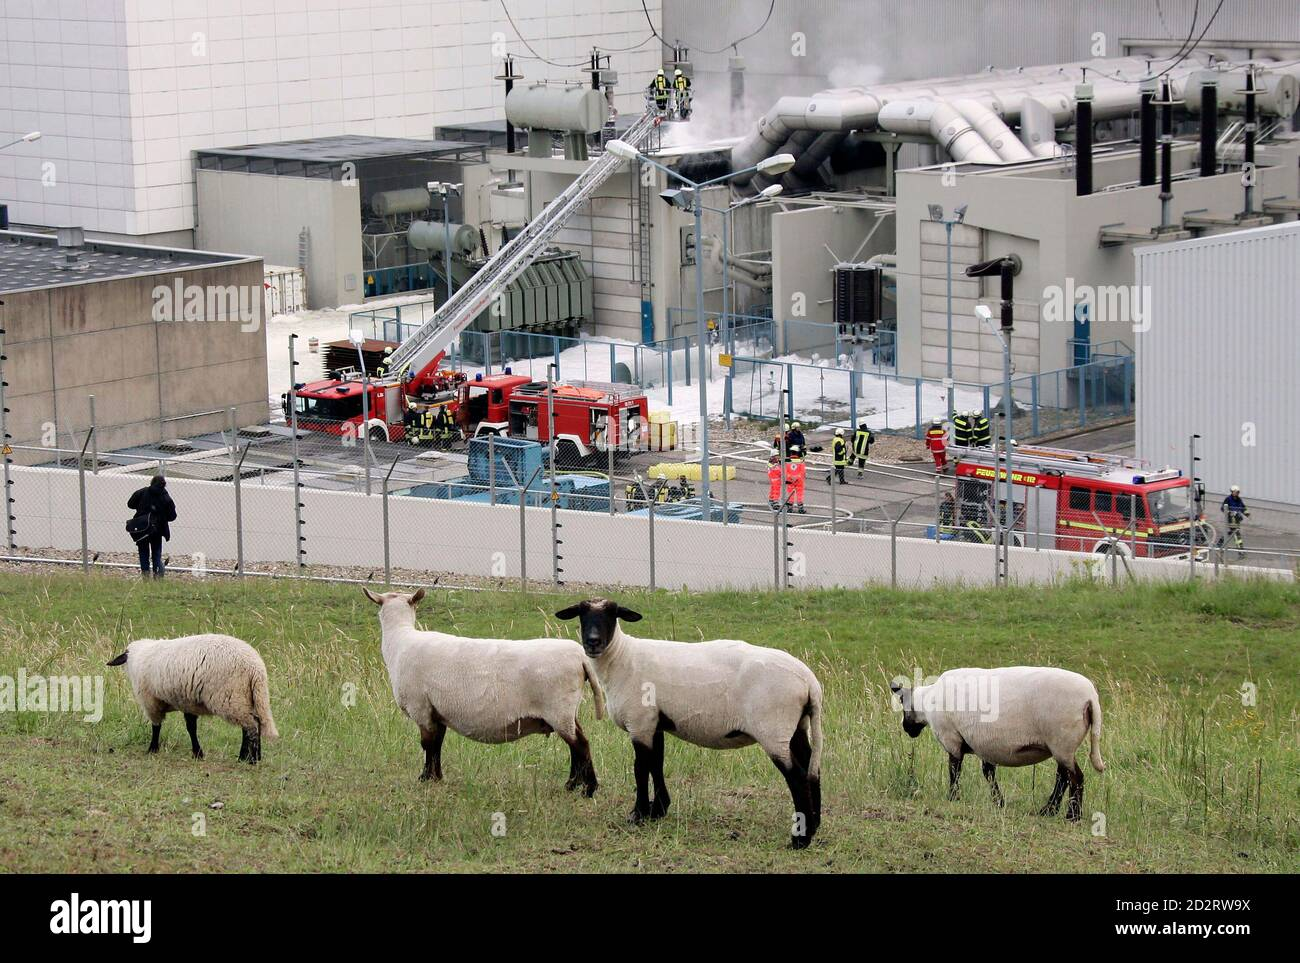 Sheep graze near the nuclear power plant Kruemmel while firefighters spray foam after extinguishing a fire at a transformer station on the site of the nuclear power plant Kruemmel, near Geesthacht, June 28, 2007. A fire broke out near the nuclear plant in northern Germany on Thursday but police said the reactor was unaffected. Vattenfall Europe, the main operator of the 1,316-megawatt Kruemmel reactor near Hamburg, said both it and the 806-megawatt Brunsbuettel plant had been disconnected from the power grid as a precaution. REUTERS/Morris Mac Matzen (GERMANY) Stock Photo